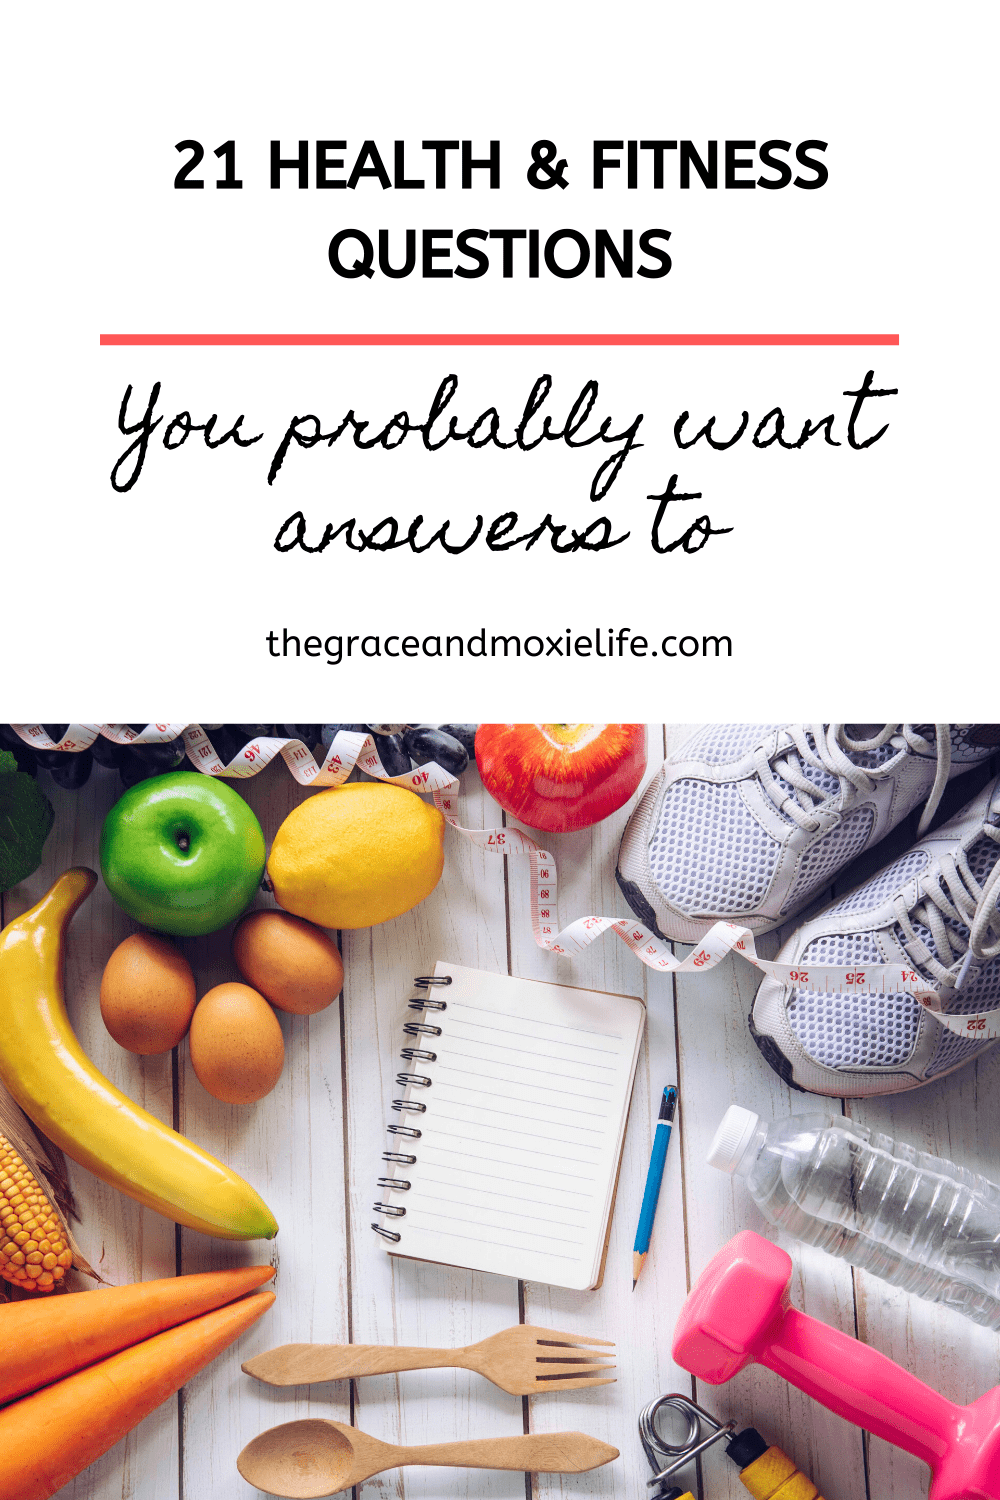 21 Health and Fitness Questions You Probably Want Answers to | The Grace and Moxie Life